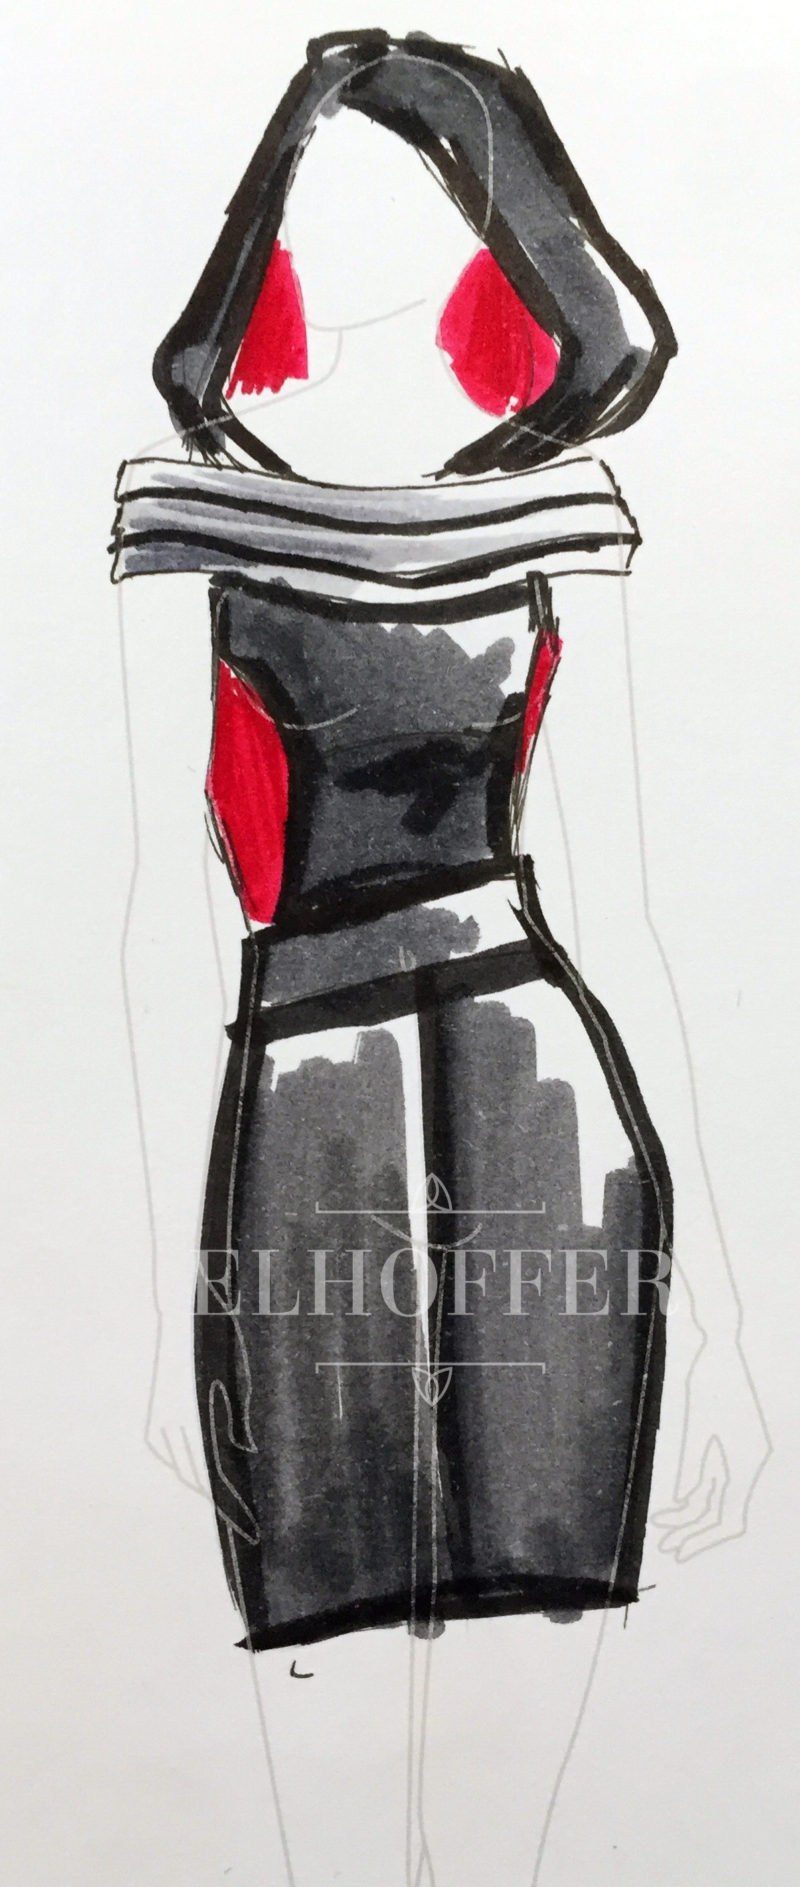 Elhoffer Design - Kylo Ren inspired dress concept sketch